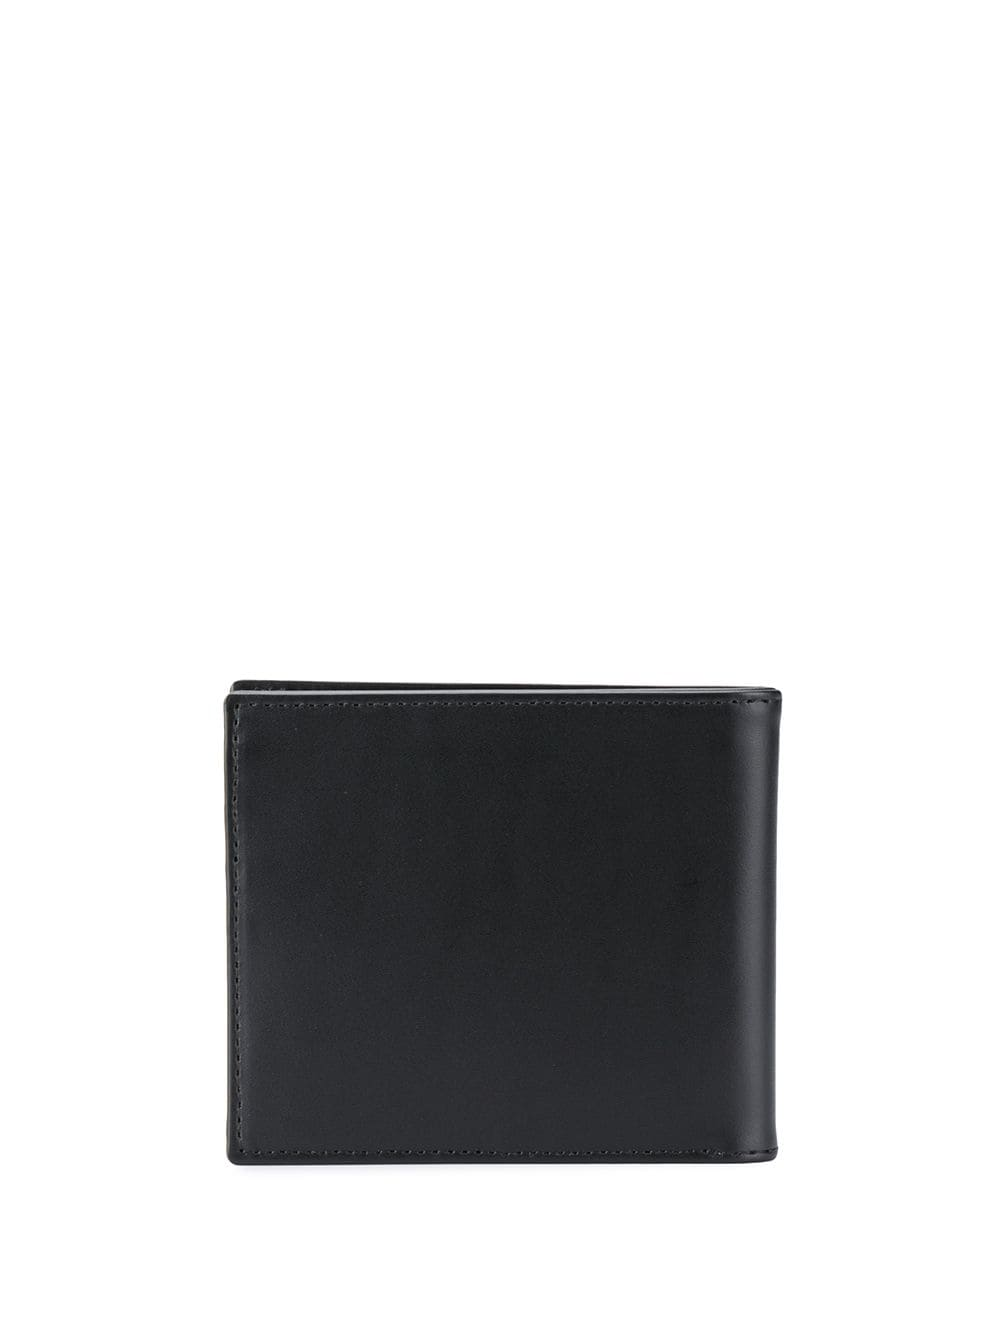 LEATHER WALLET A.P.C. | Wallets | PXAWV-H63153LZZ